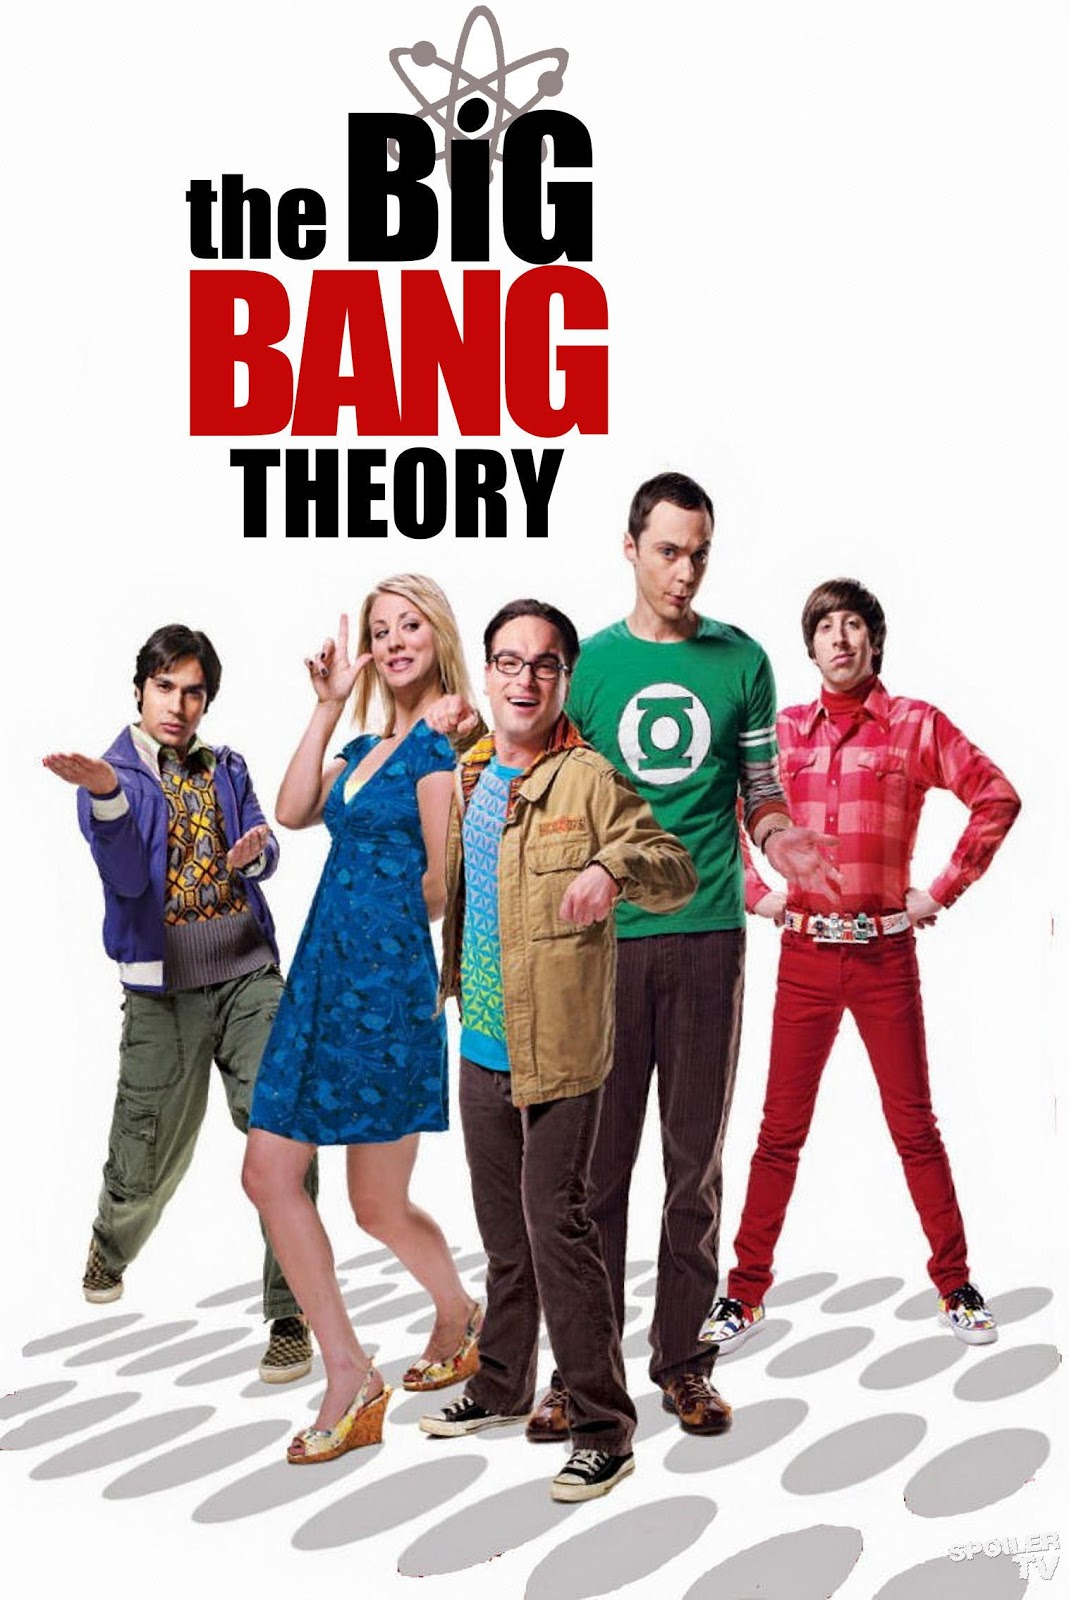 the big bang theory essay example One recent example is the book by the physicist lawrence m krauss, a universe  from nothing, which claims that science has shown that the.